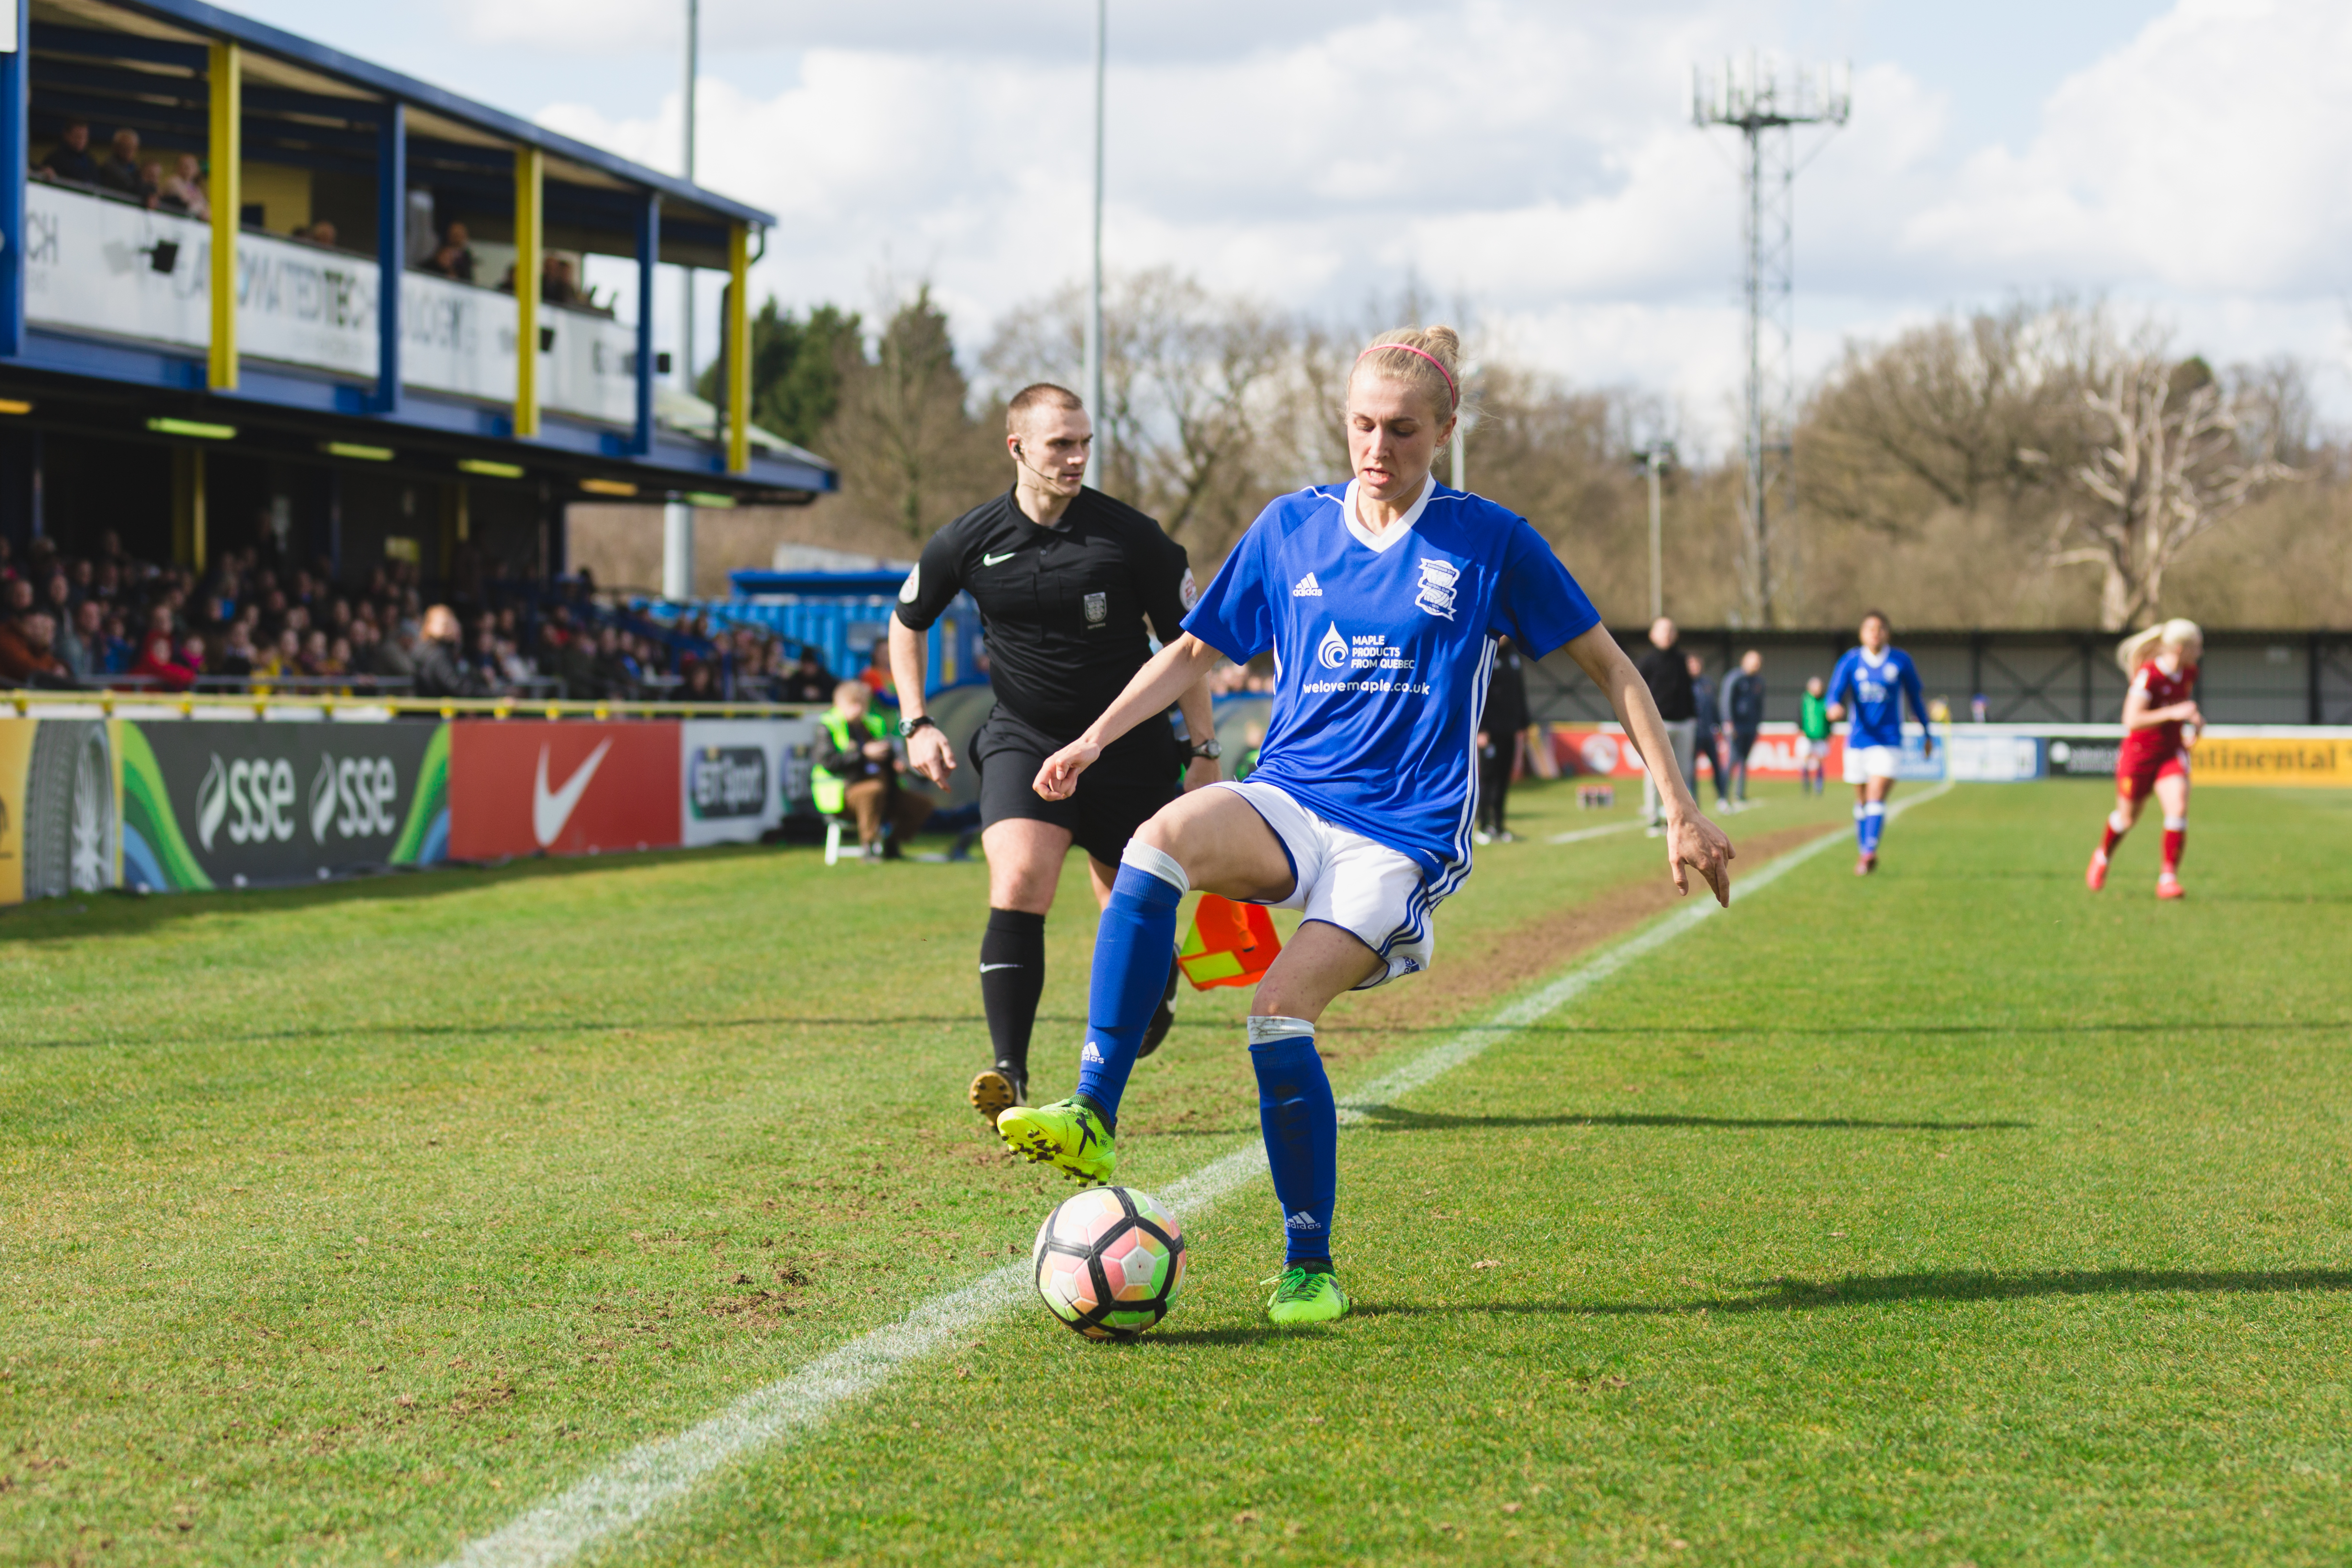 Birmingham City Ladies FC player turning the ball